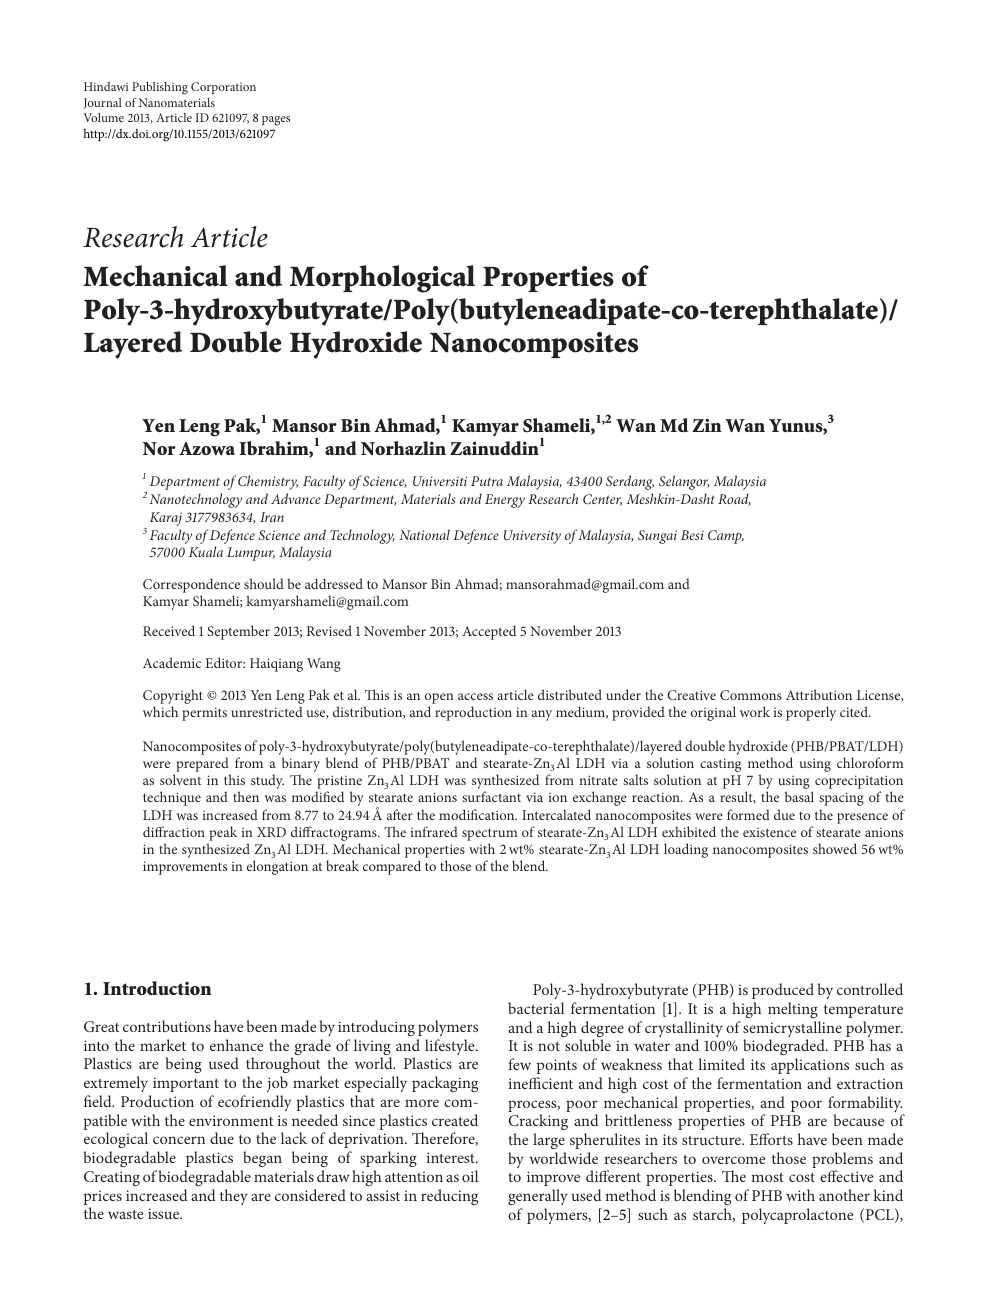 Mechanical and Morphological Properties of Poly-3-hydroxybutyrate